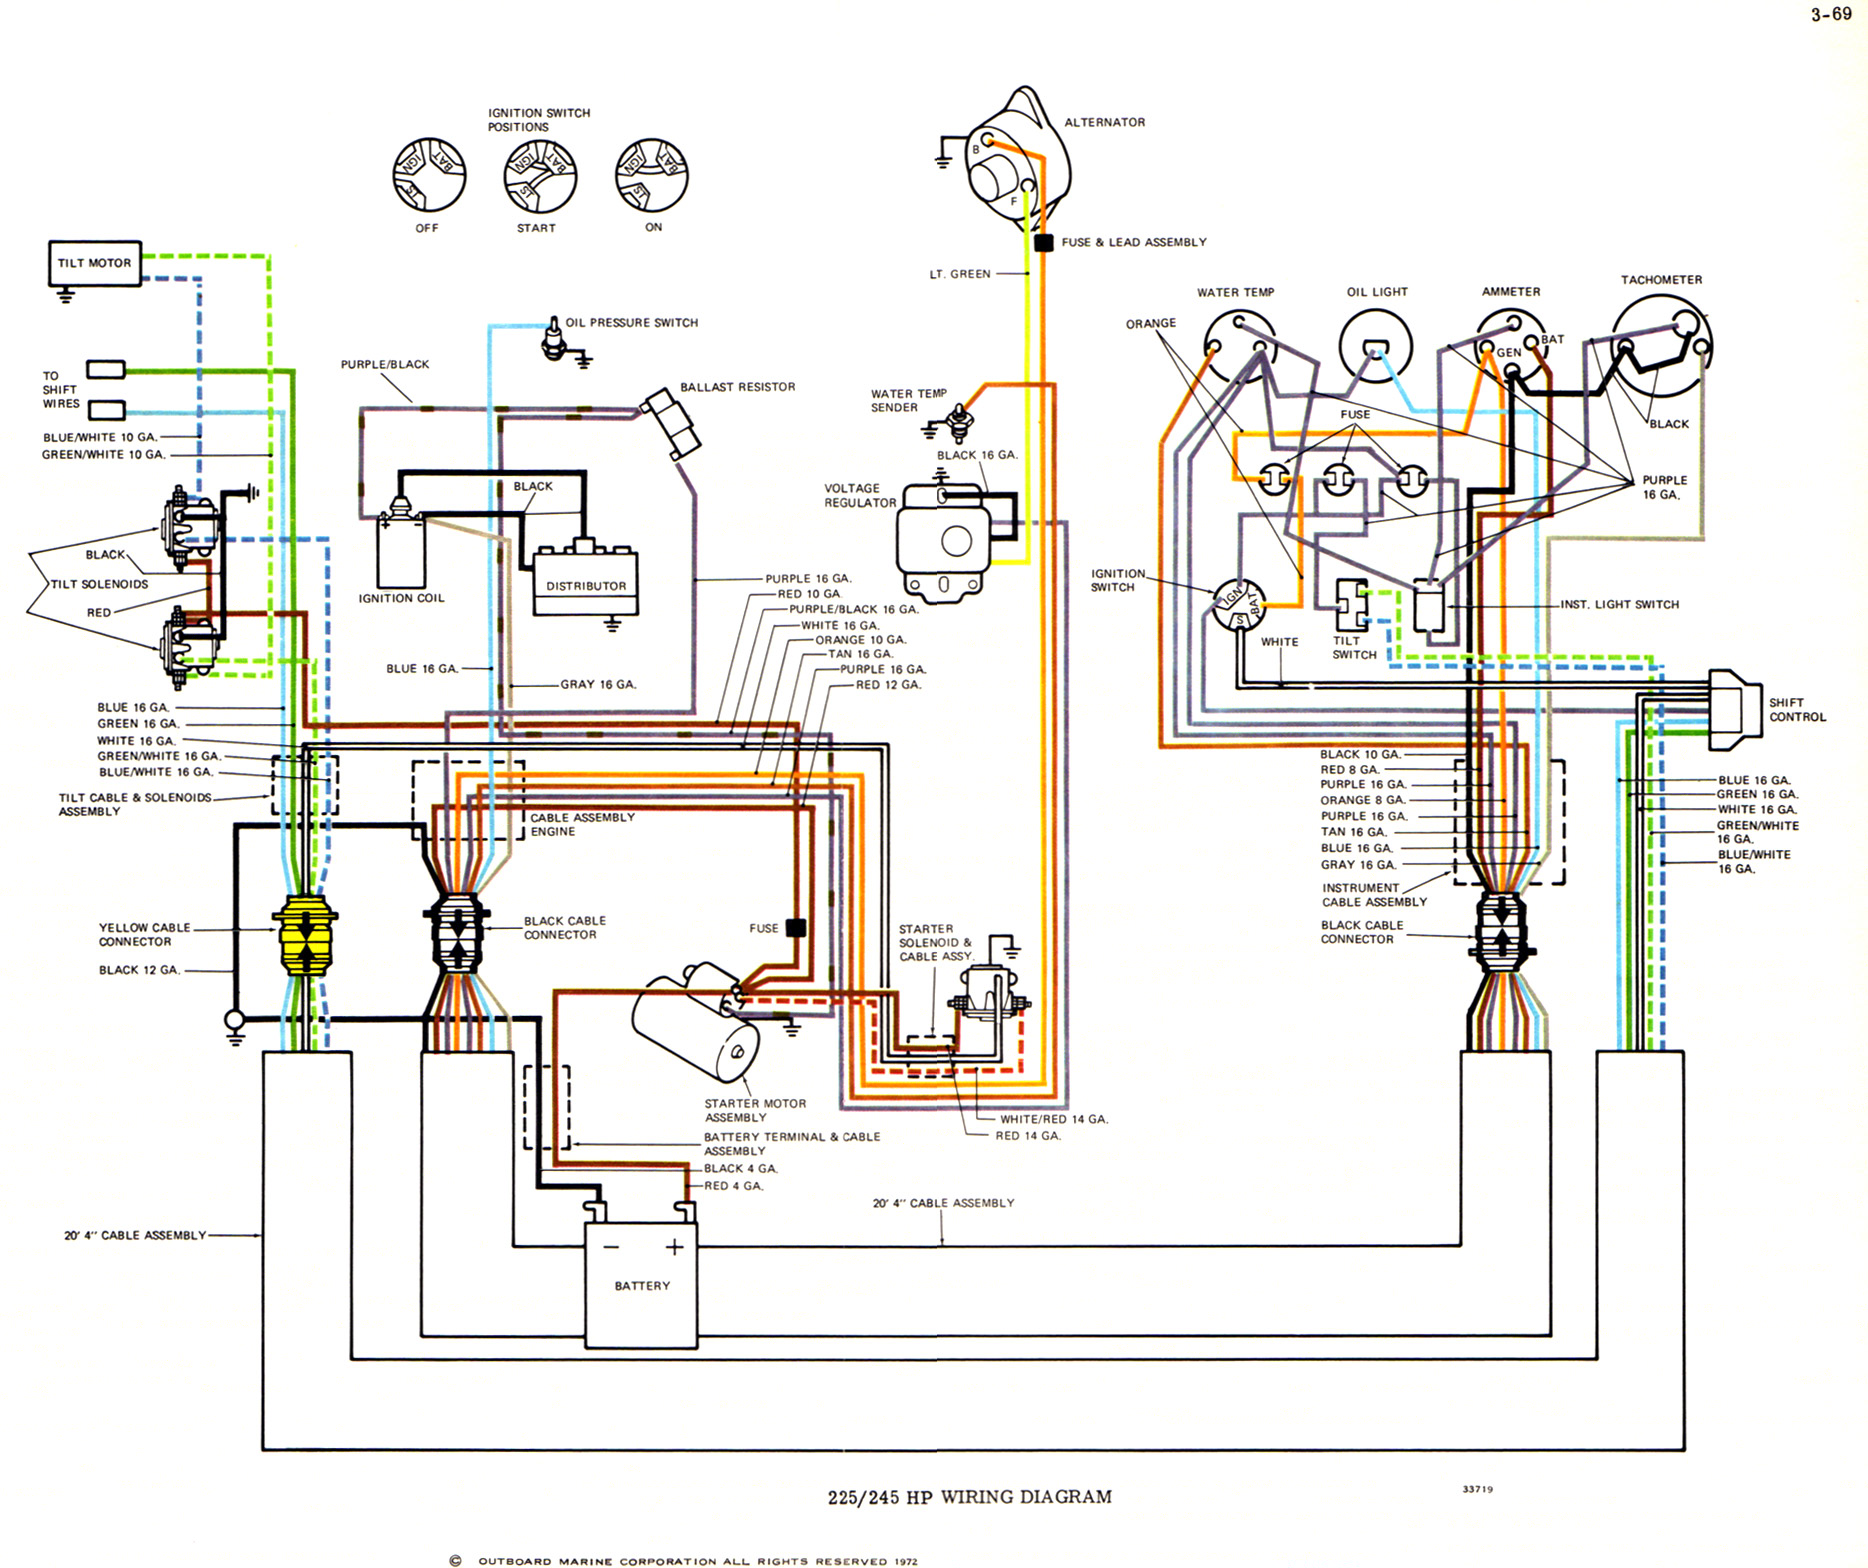 73_OMC_V8_all_big yamaha outboard main harness wiring diagram the wiring diagram wiring harness for boats at crackthecode.co